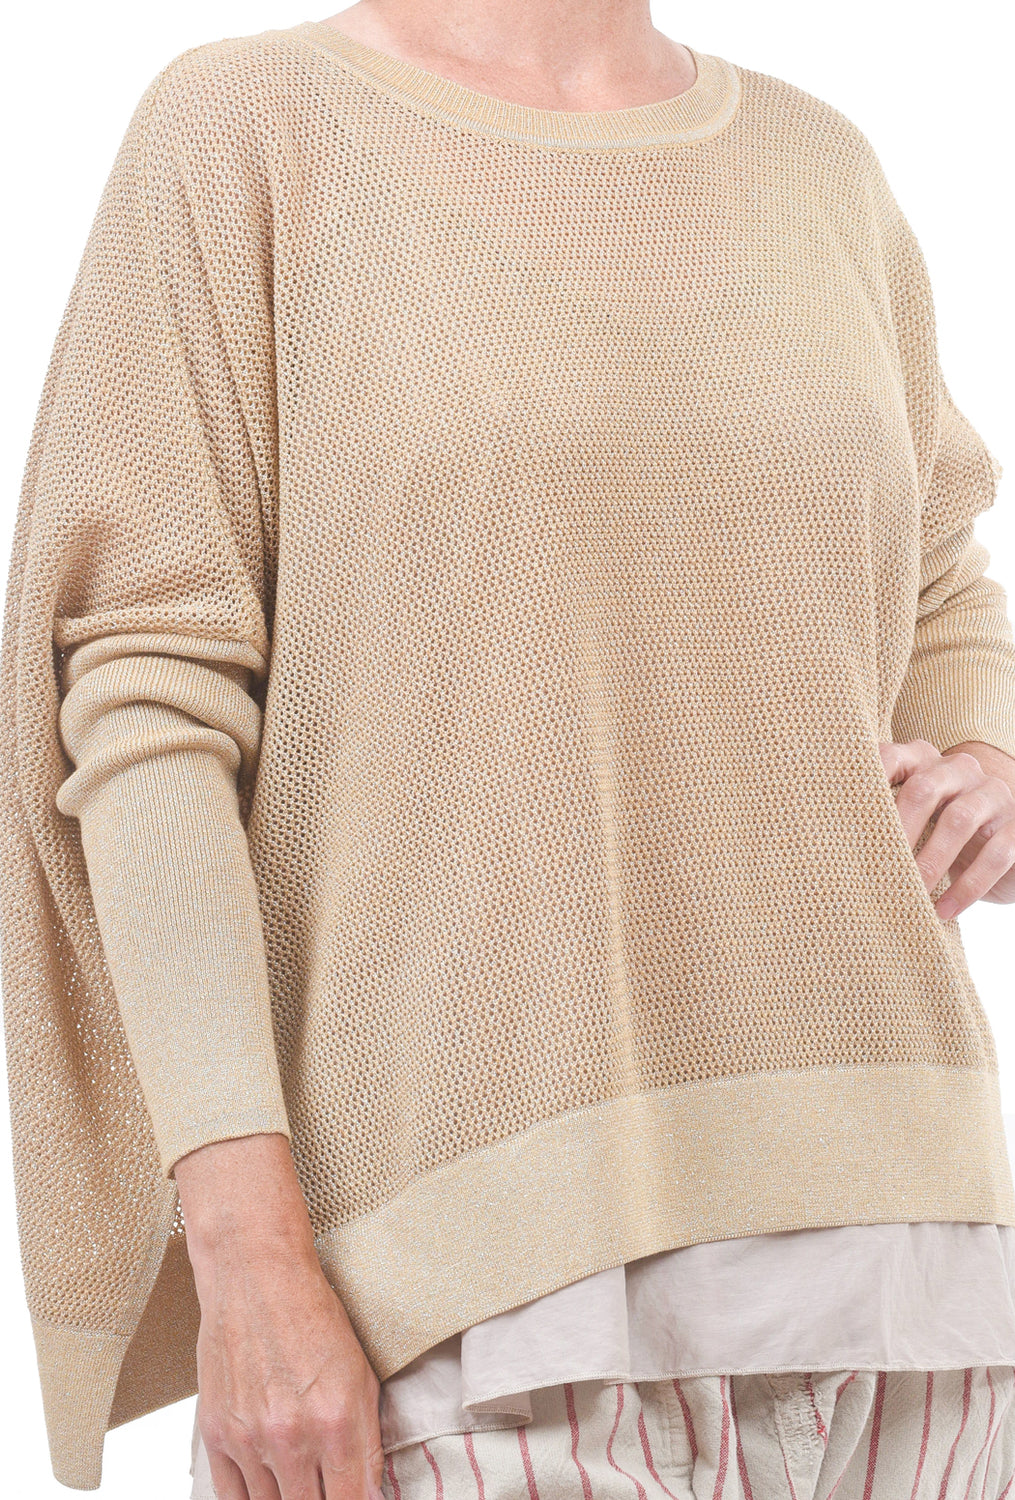 Planet Metallic Seed Stitch Sweater, Peanut One Size Peanut